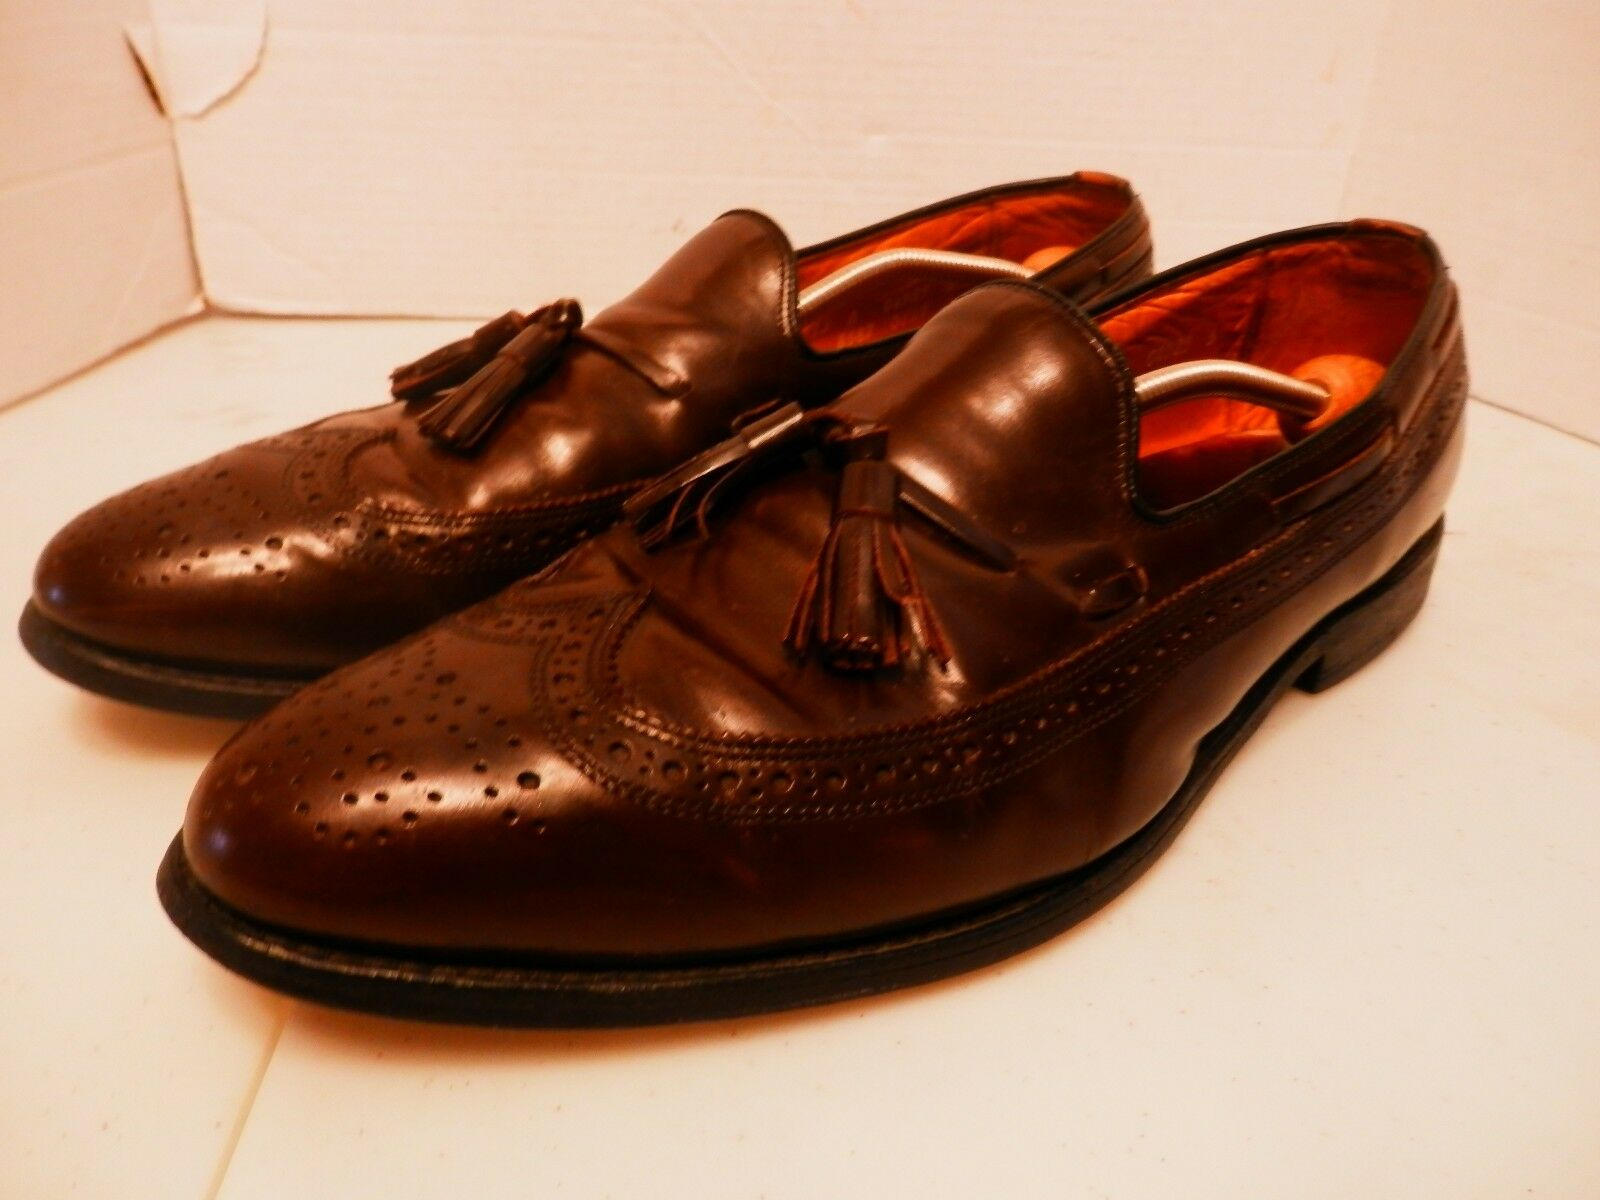 Allen Edmonds Manchester Brown Brogue Longwing Tassle Leather Loafers-Size 13A